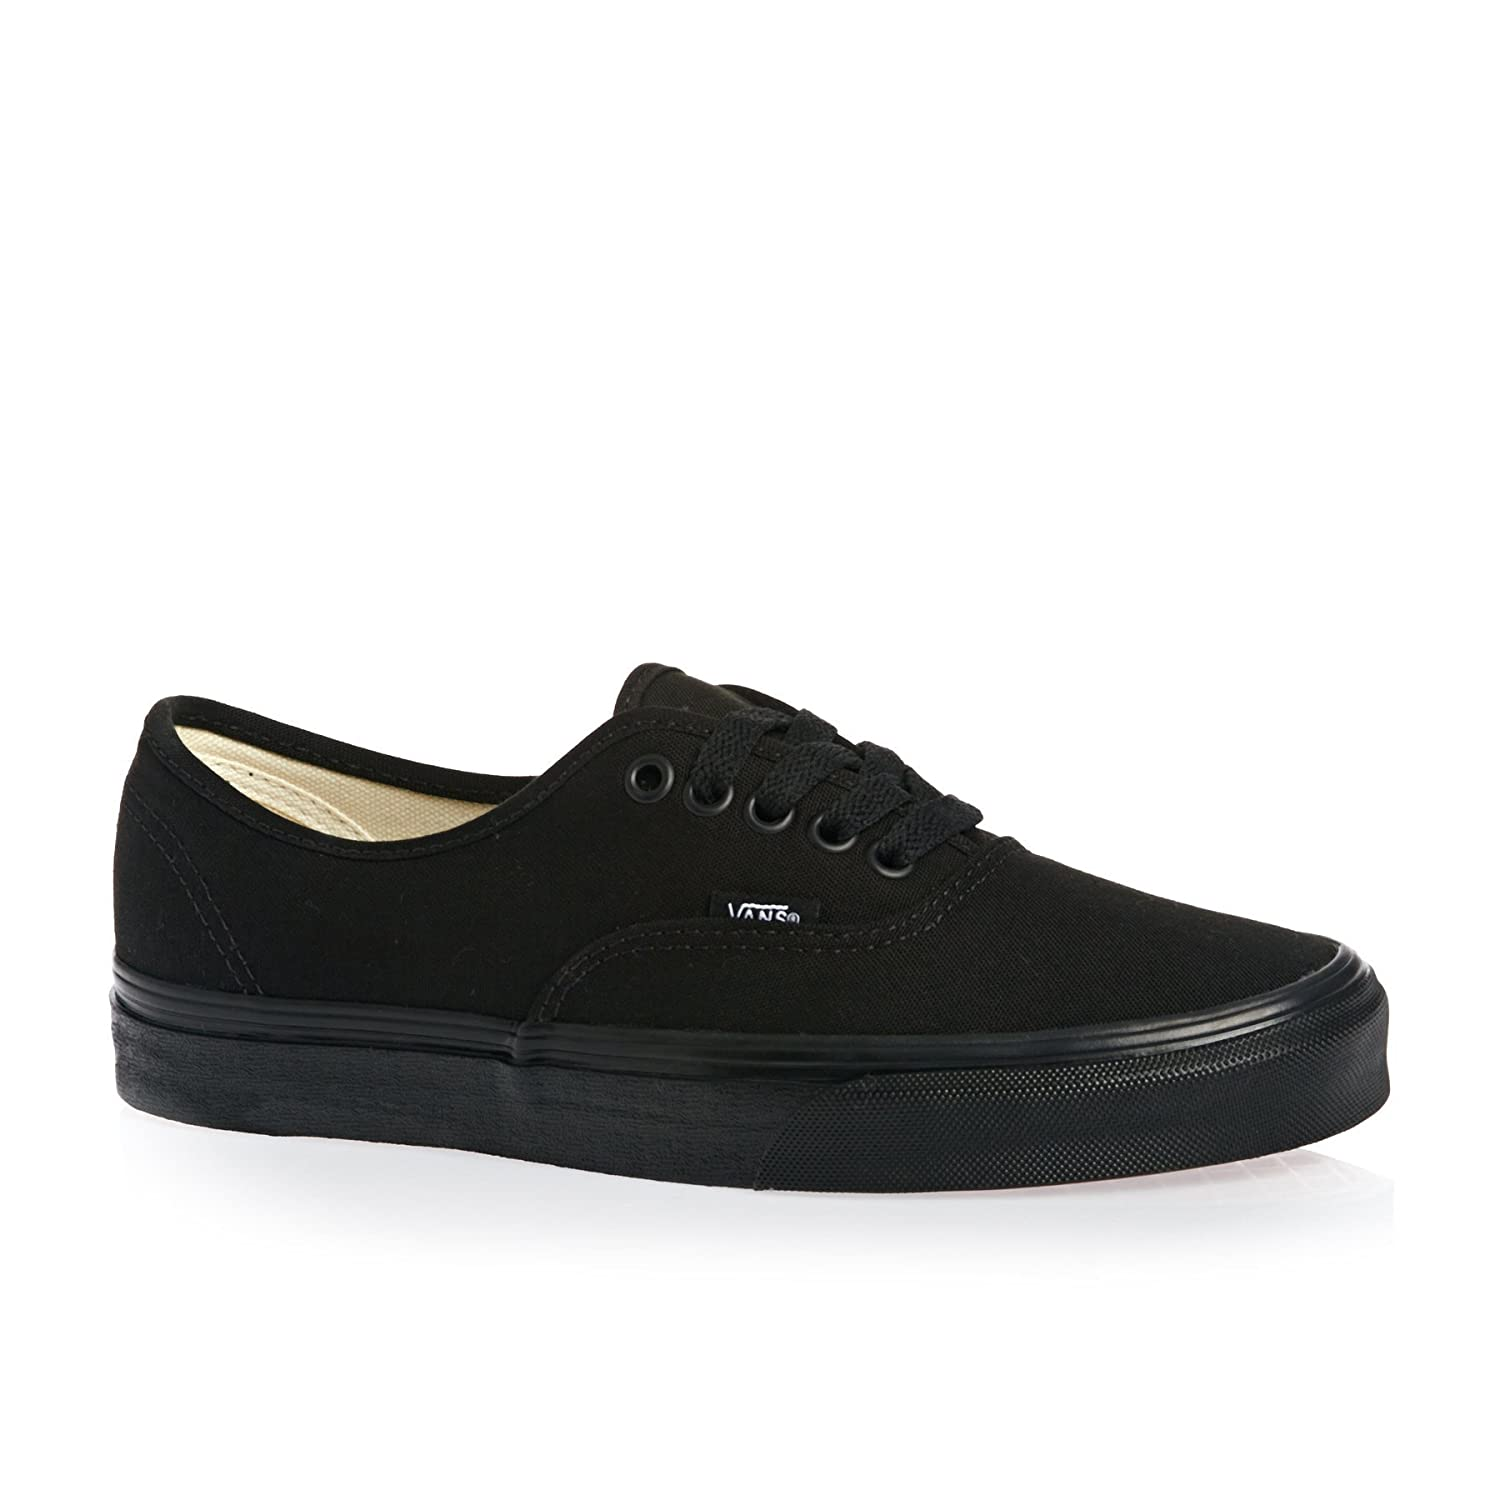 Vans Authentic - Zapatillas Unisex Adulto 42 EU|Negro